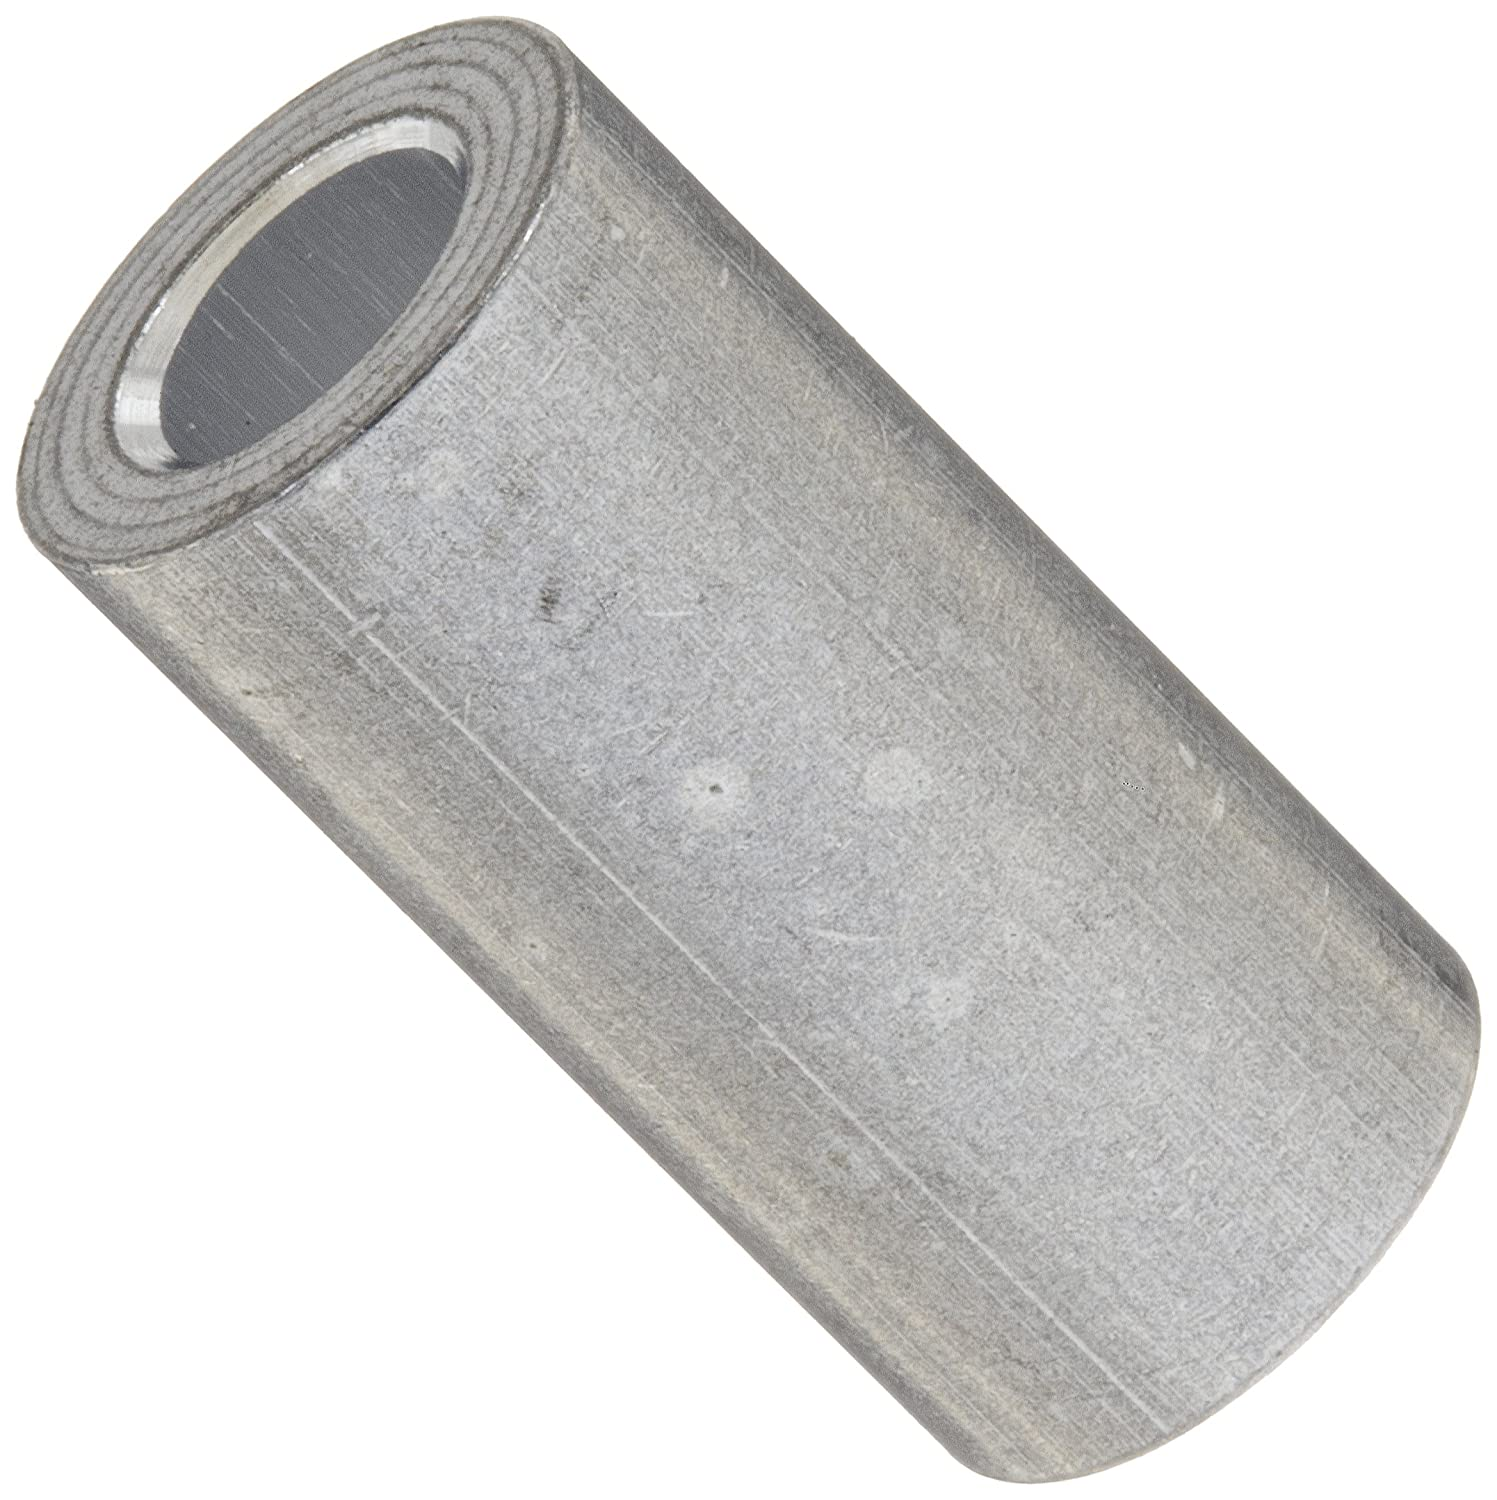 Aluminum Round Spacer Pack of 10 Pack of 10 0.166 ID #8 Screw Size 5//16 OD 0.166 ID 5//8 Length 5//8 Length 5//16 OD Plain Finish Small Parts 311008RSA